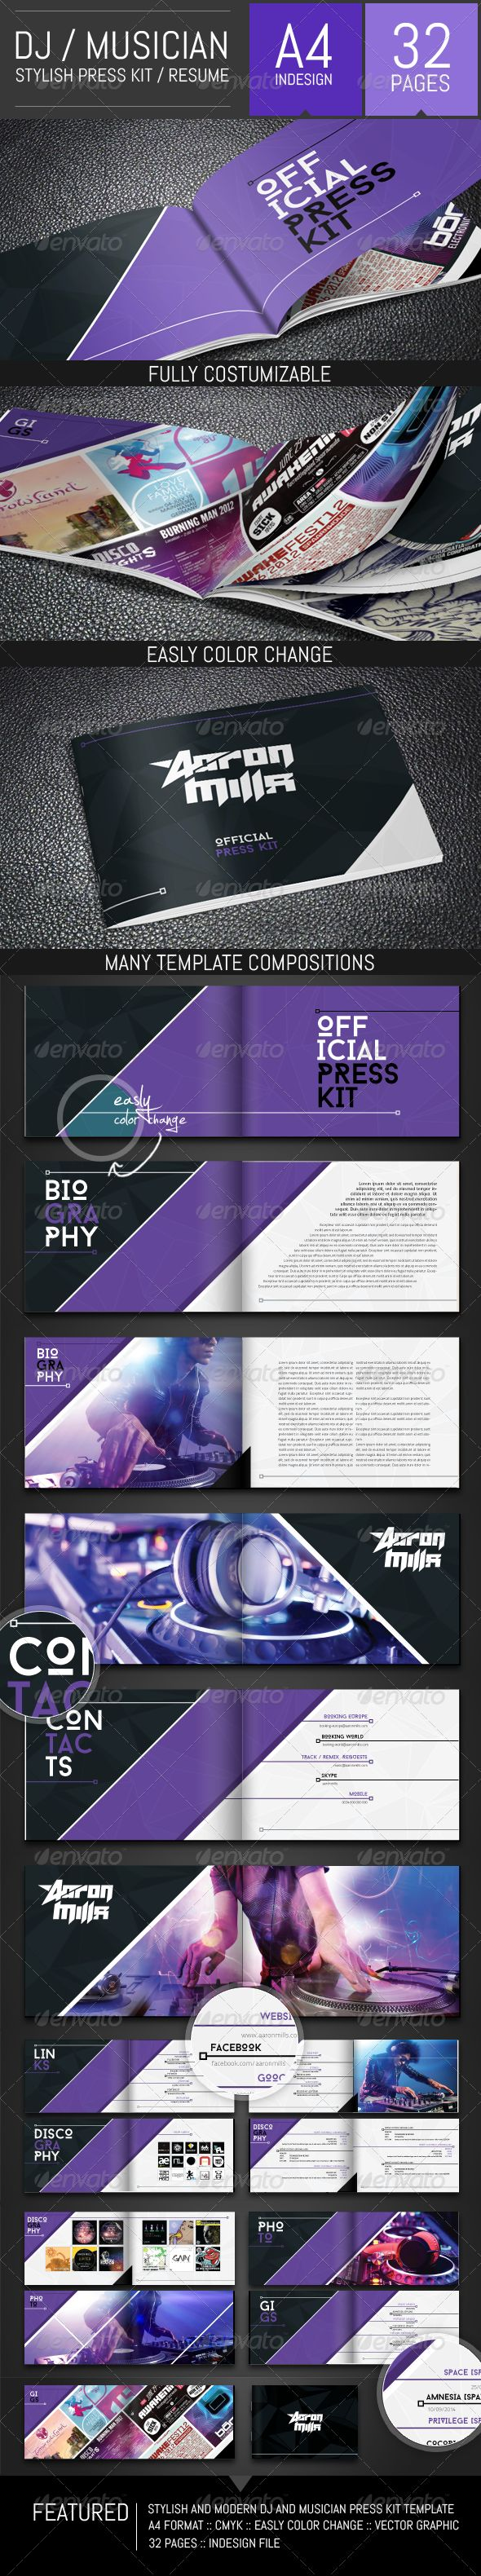 DJ and Musician Press Kit / Resume Template #portfolio #Press Kit #producer • Available here → http://graphicriver.net/item/dj-and-musician-press-kit-resume-template/8487637?s_rank=16&ref=pxcr